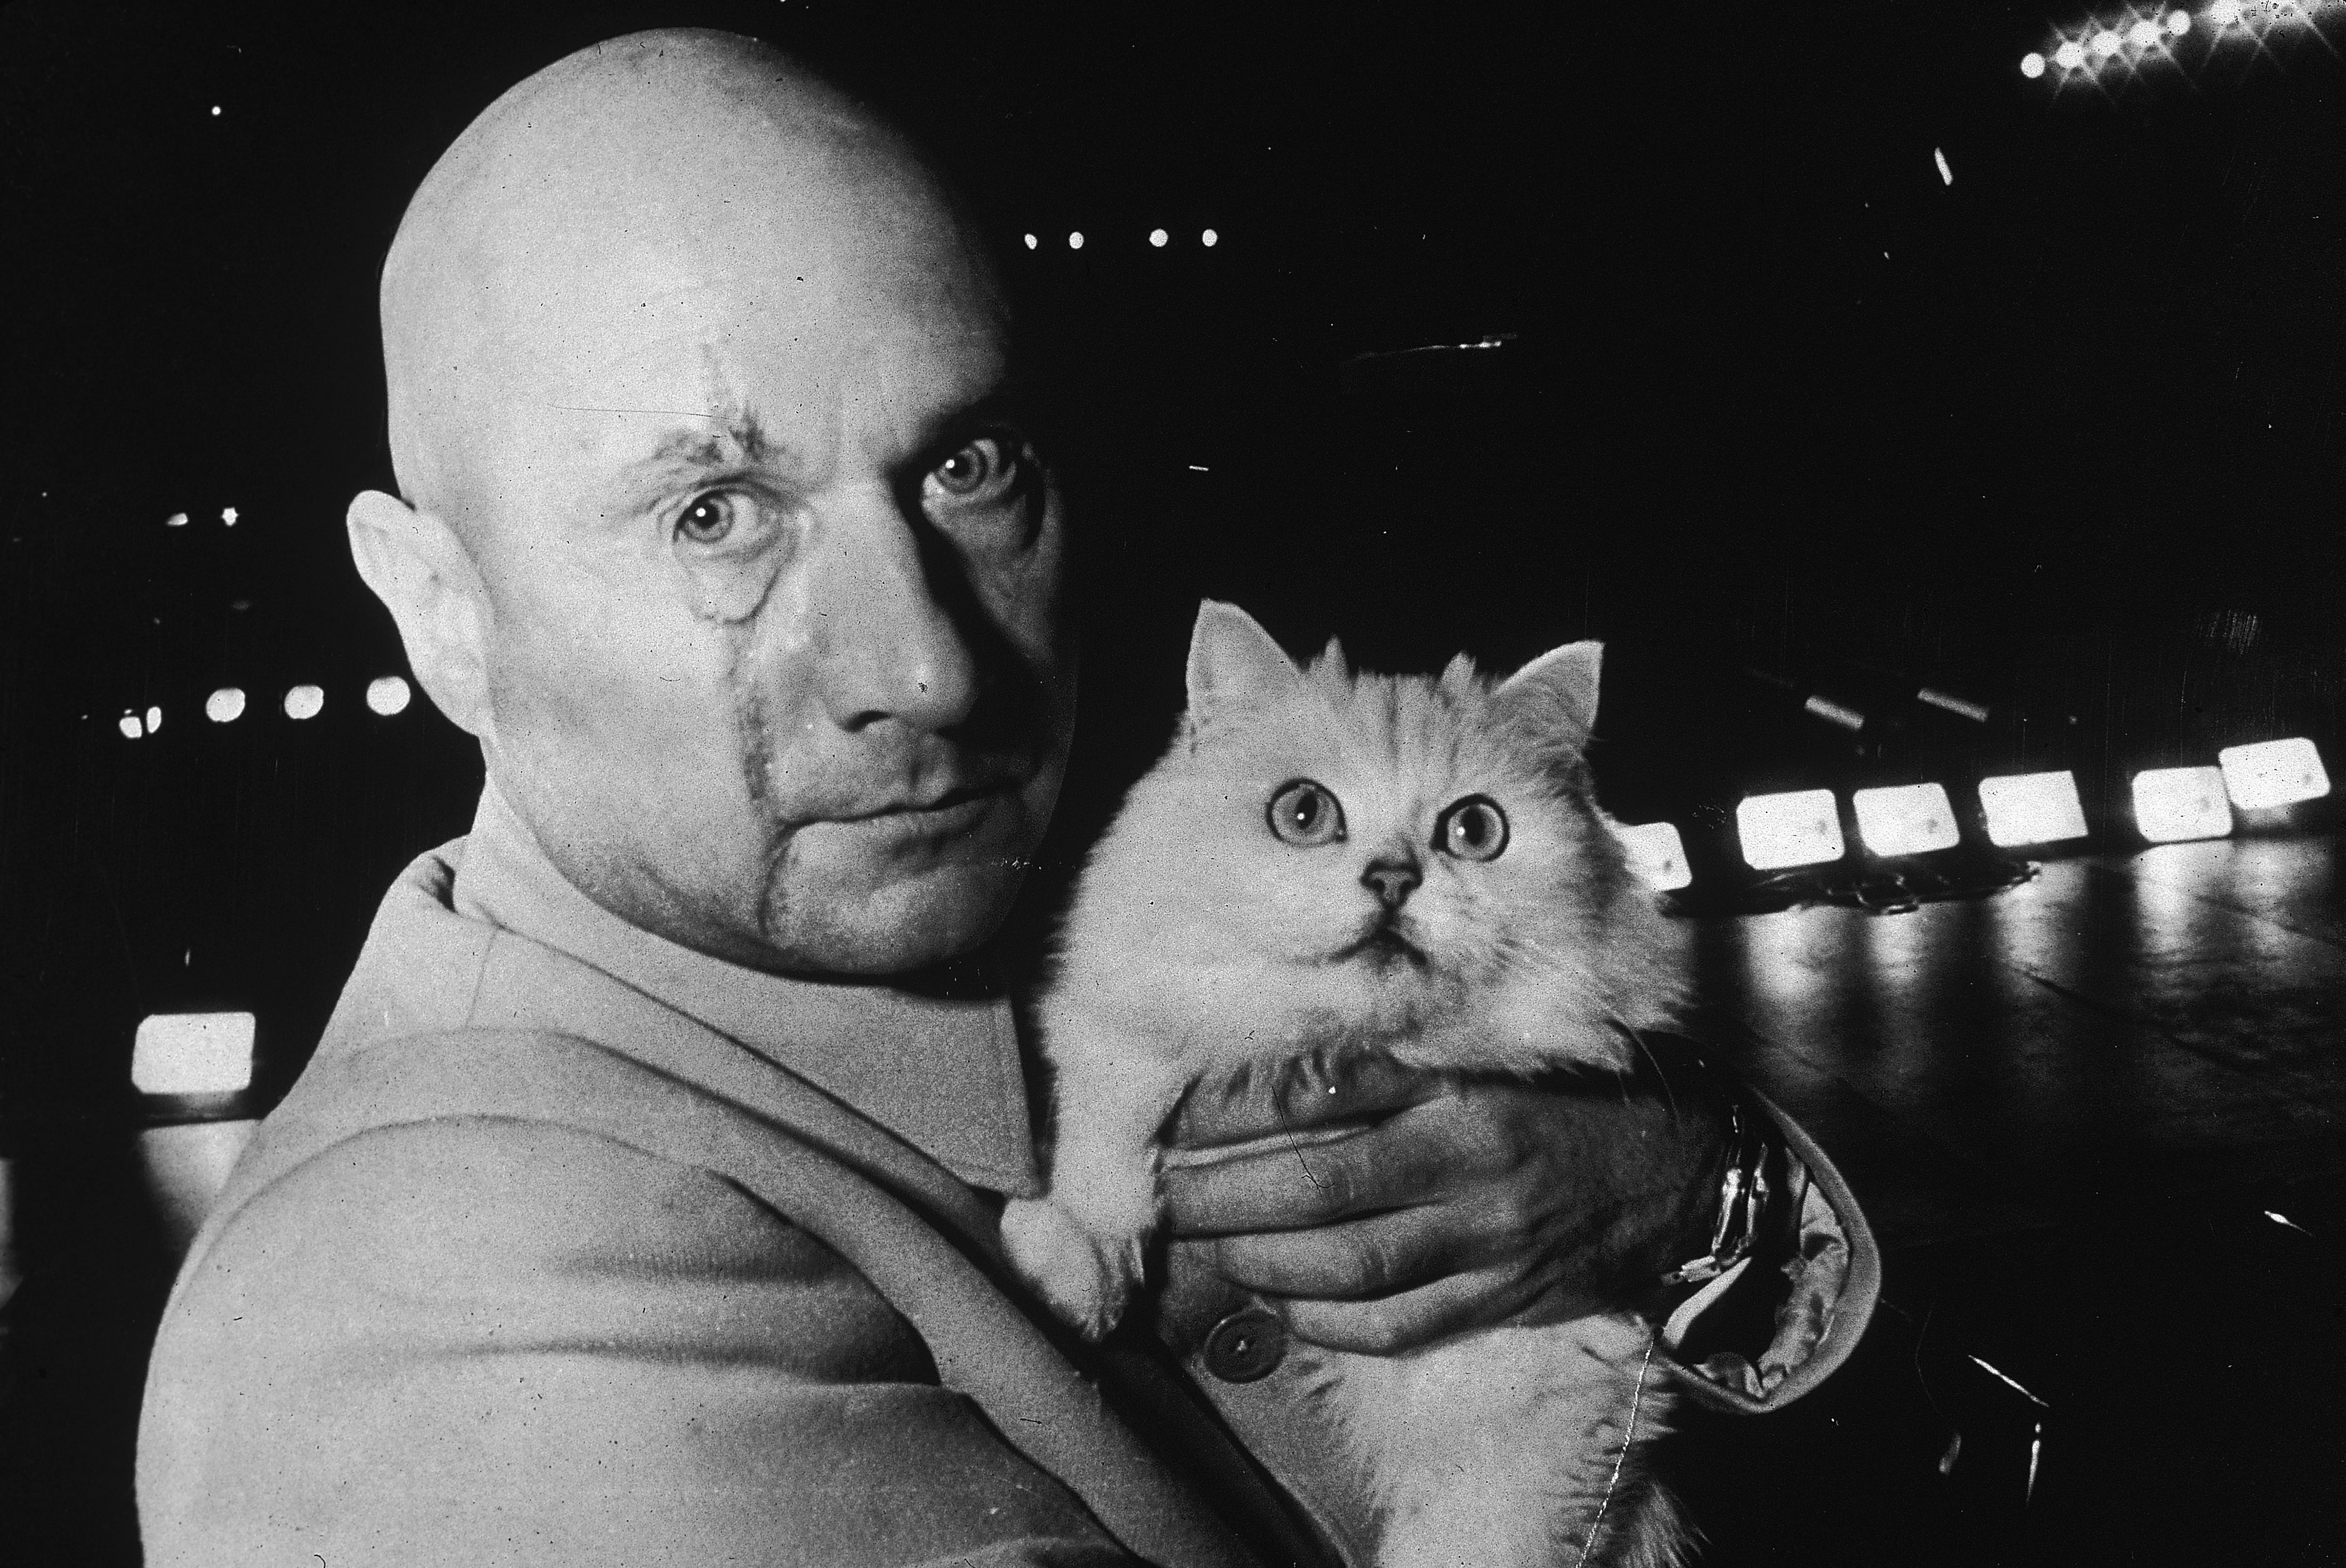 Donald Pleasence as Ernst Stavro Blofeld, holding a white cat, on the set of the James Bond film You Only Live Twice